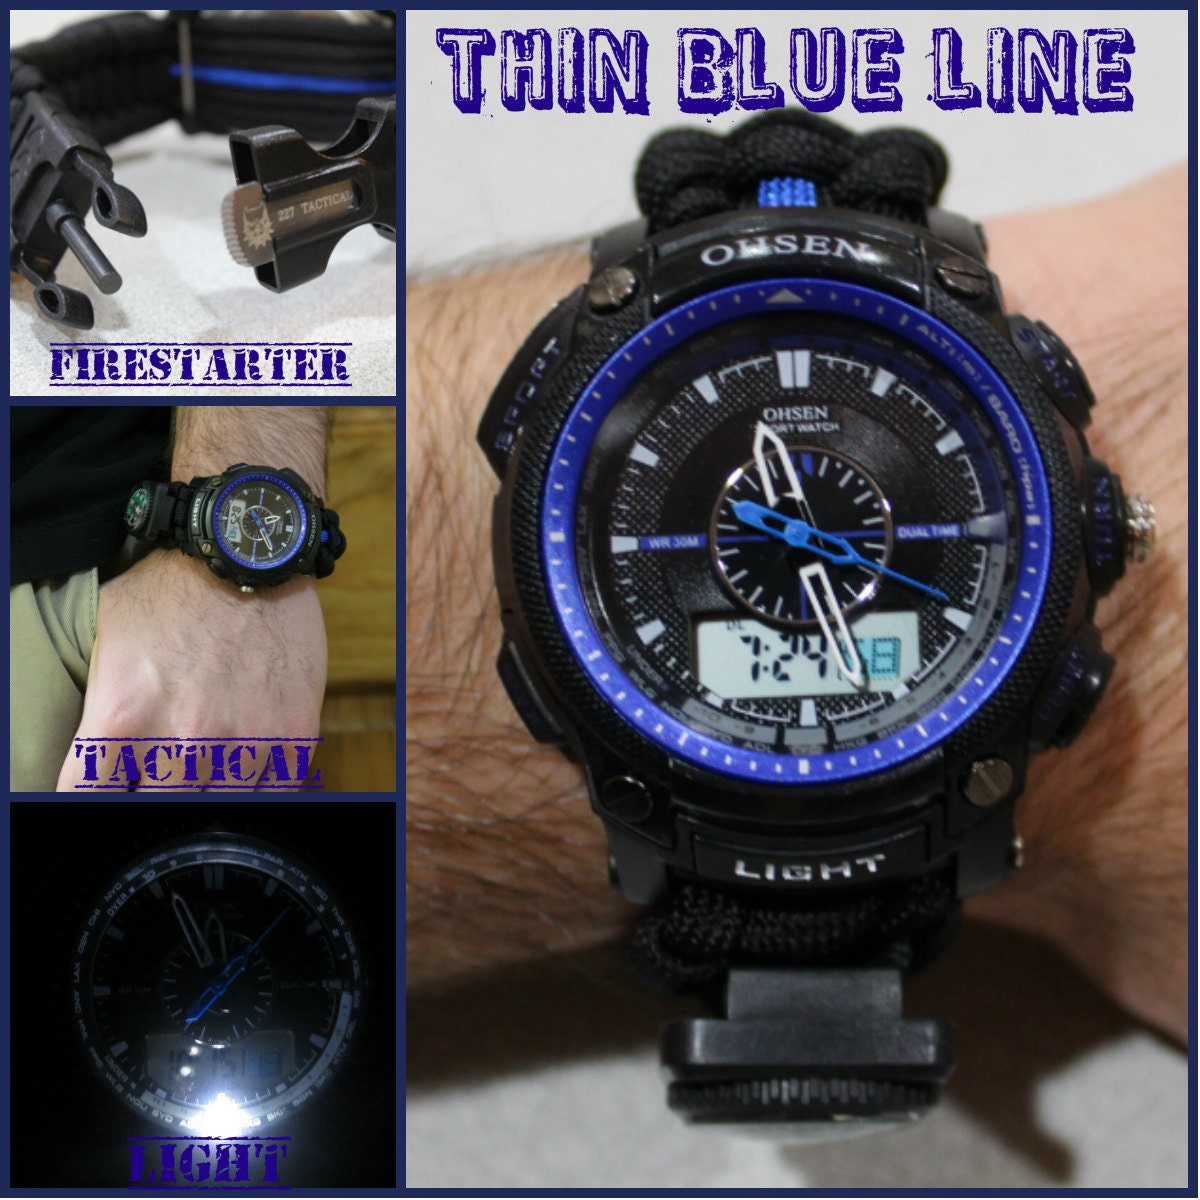 227 thin blue line tactical survival paracord watch